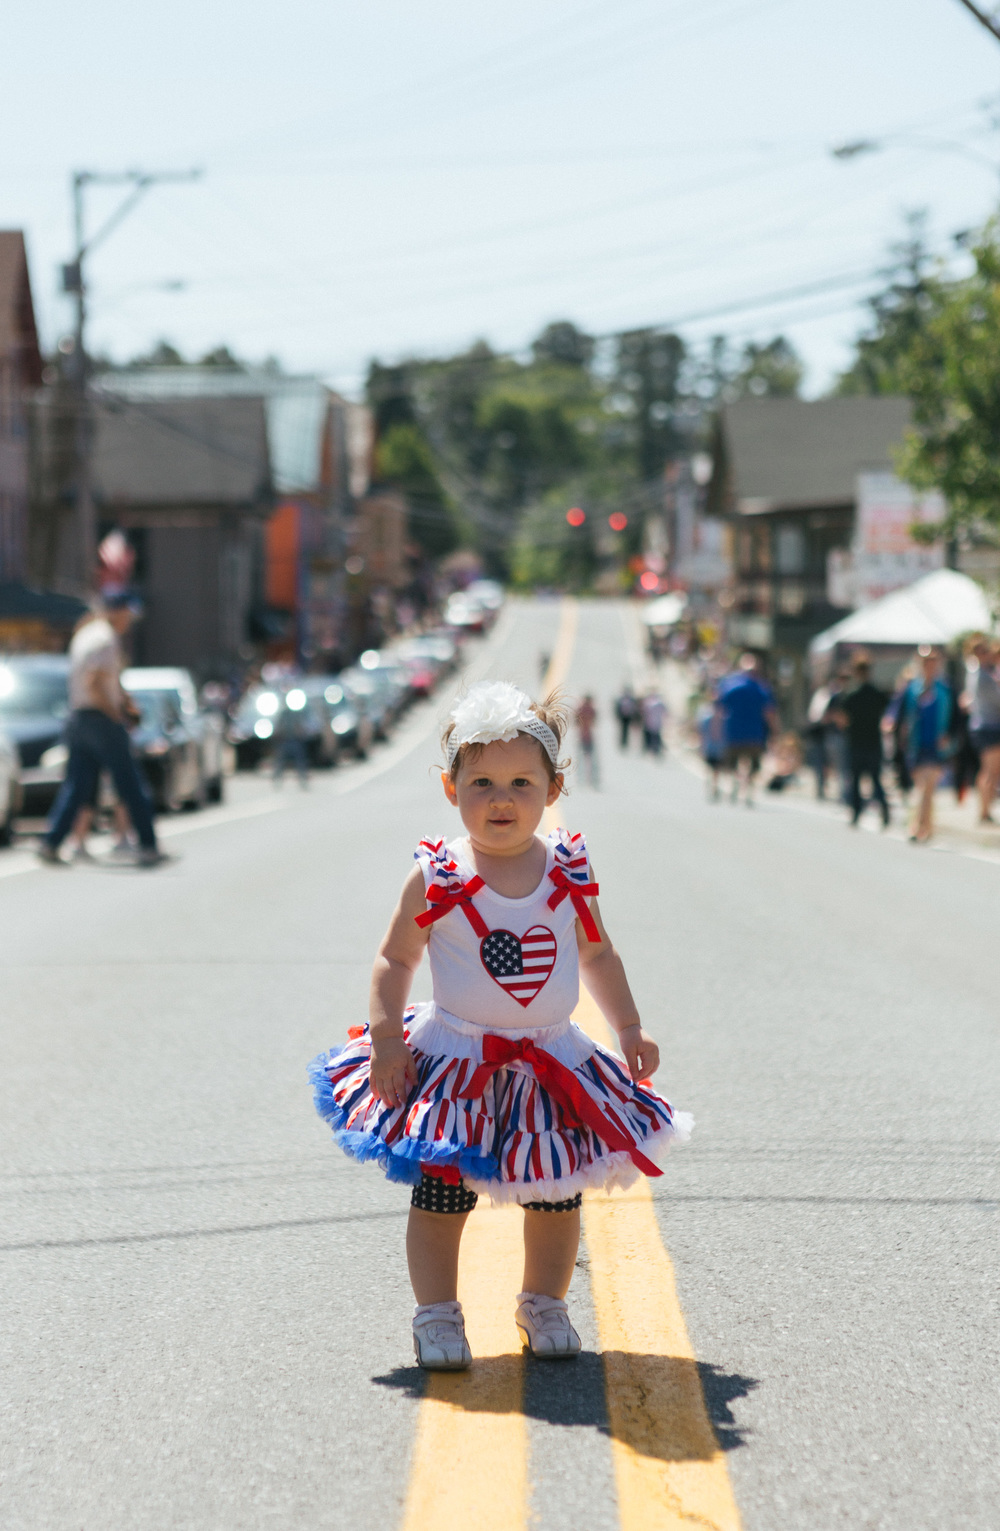 A girl poses for a photo after the road is shut down for the parade.jpg